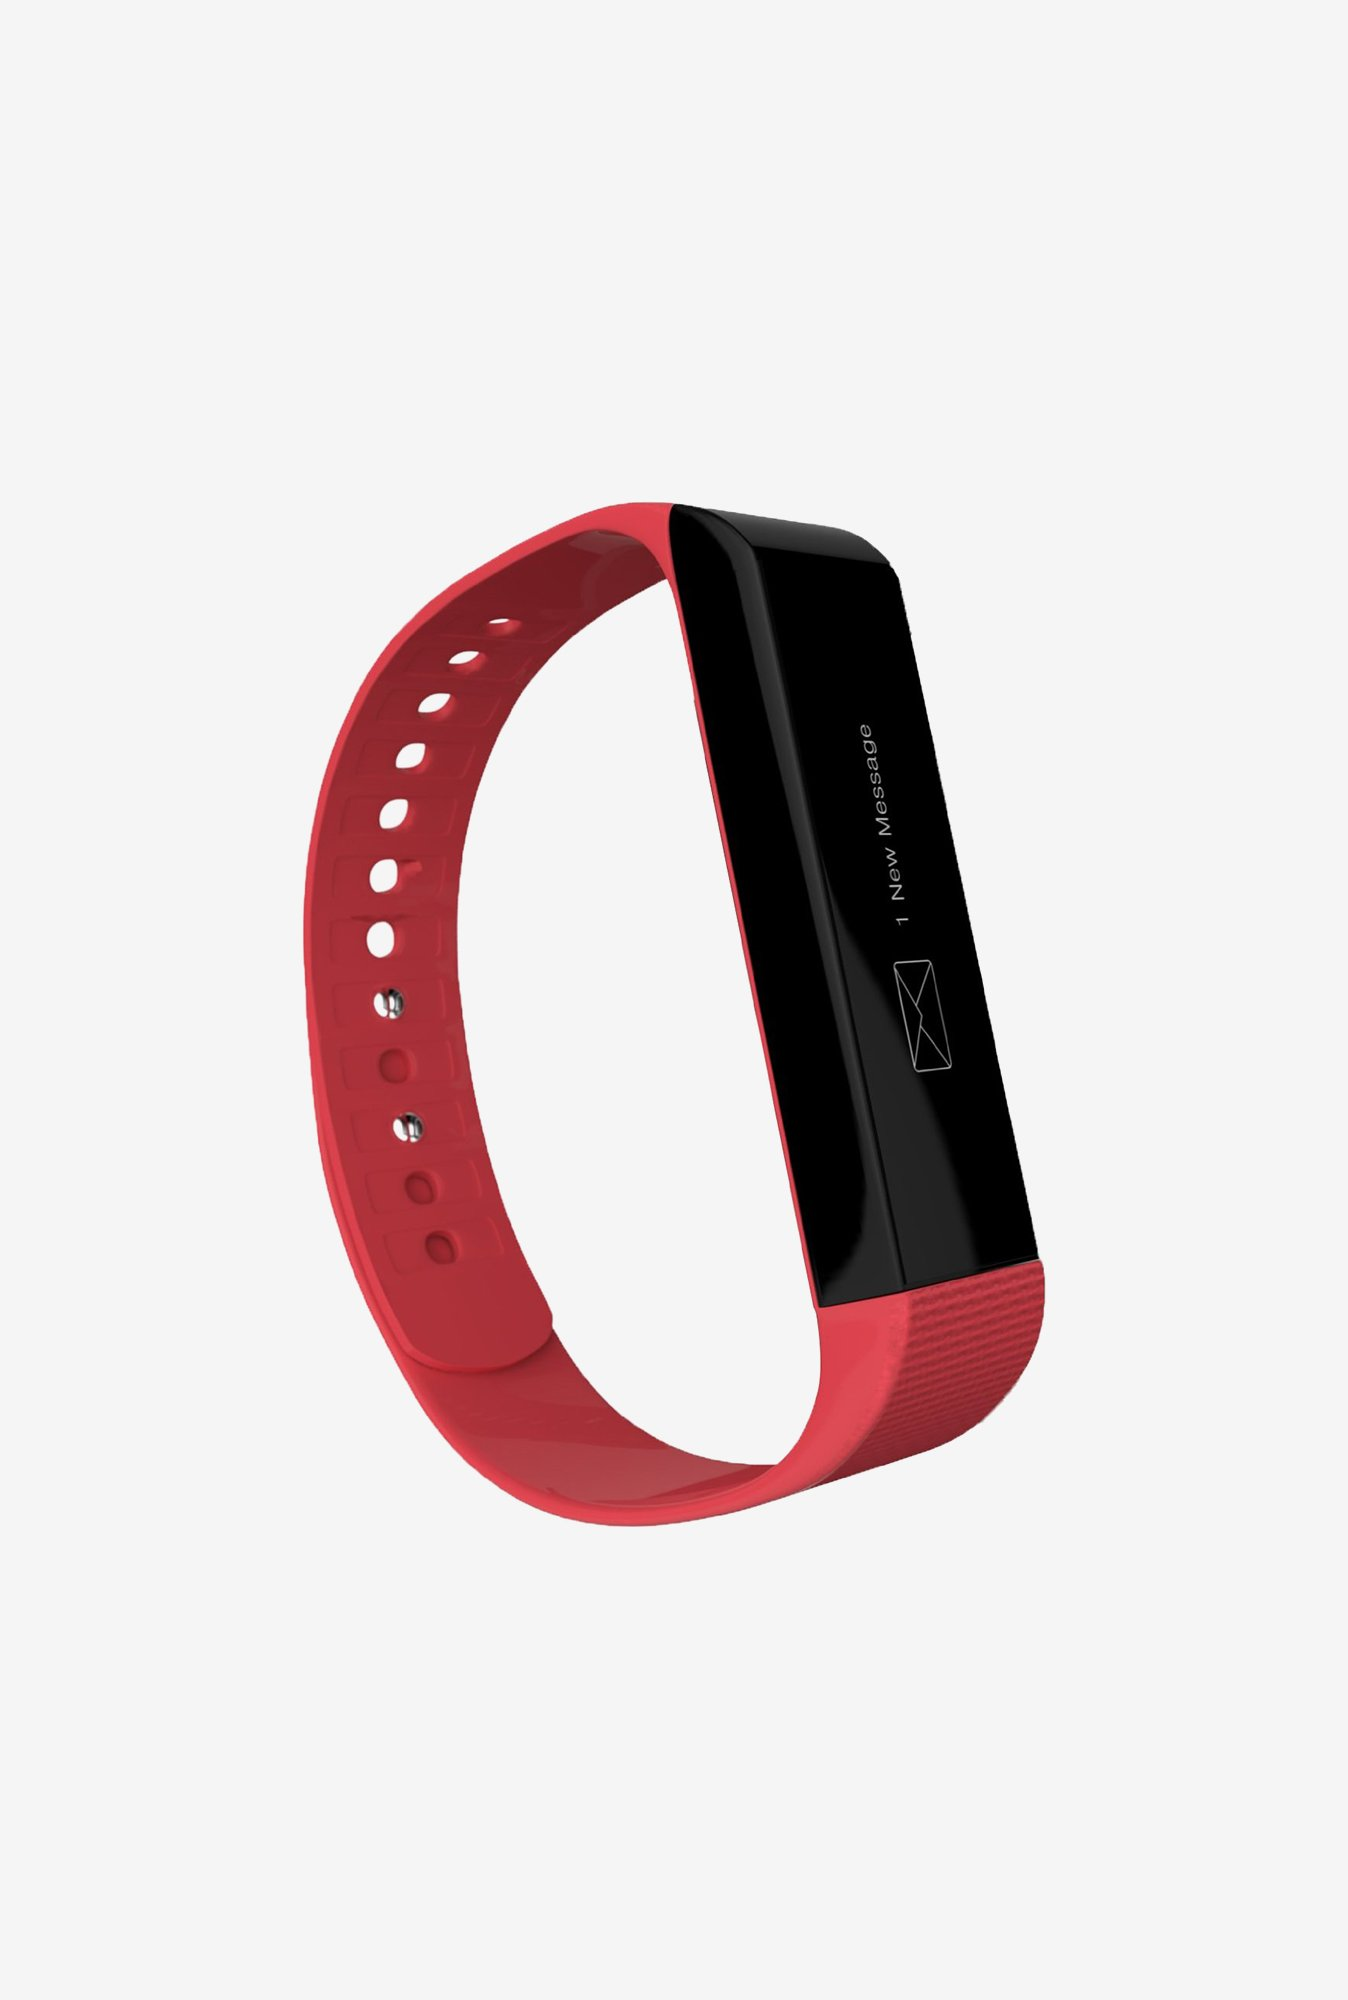 Shaman AQUA TOUCH DW007+ Fitness Tracker (Red)